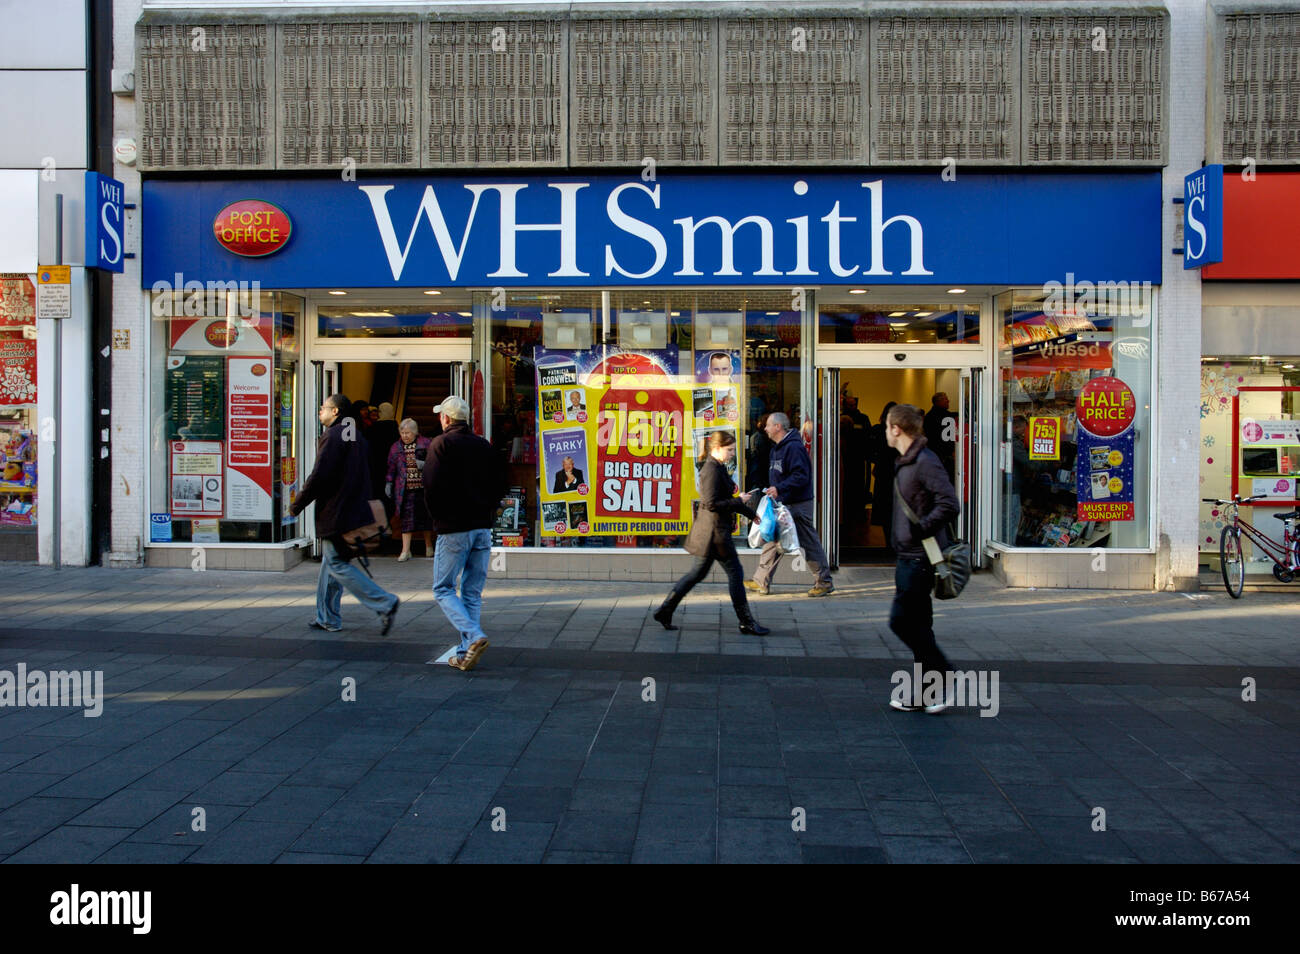 WH Smith newsagent stationers and Post Office on Gallowtree Gate in Leicester City Stock Photo